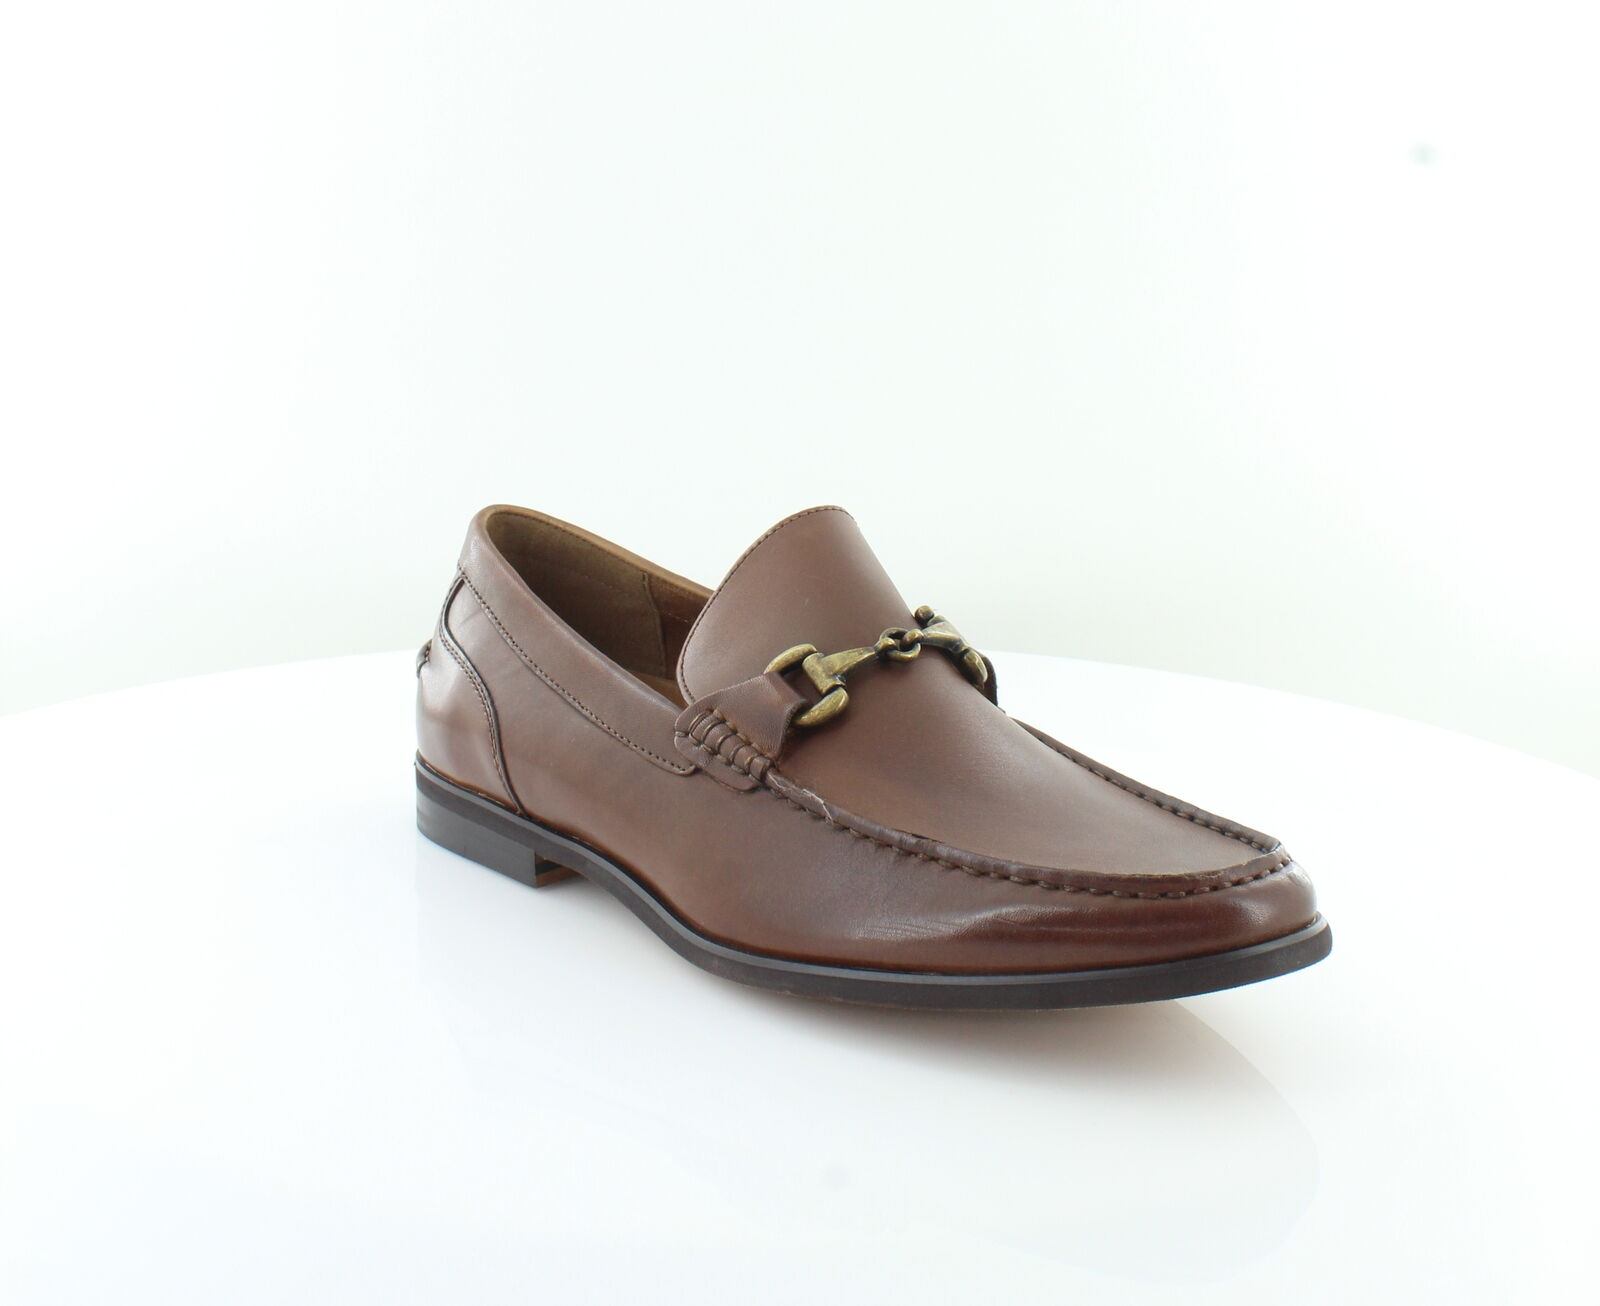 Kenneth Cole Reaction Crespo Loafer 2.0 Men's Loafers & Slip-Ons Cognac Size 11